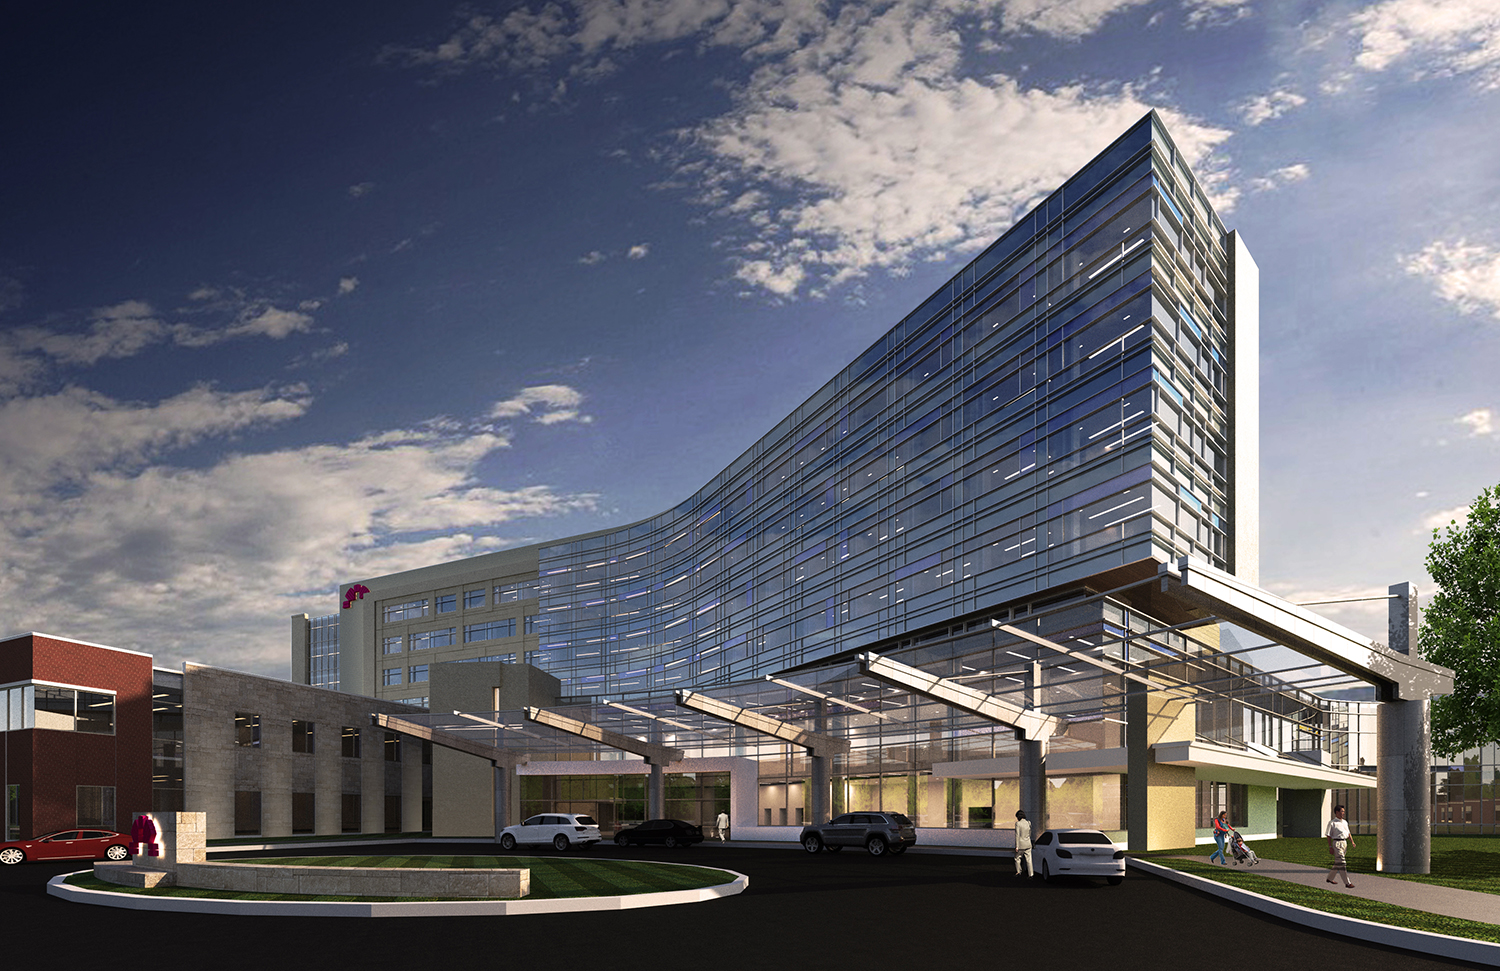 New Patient Tower Rendering Courtesy of Gresham Smith